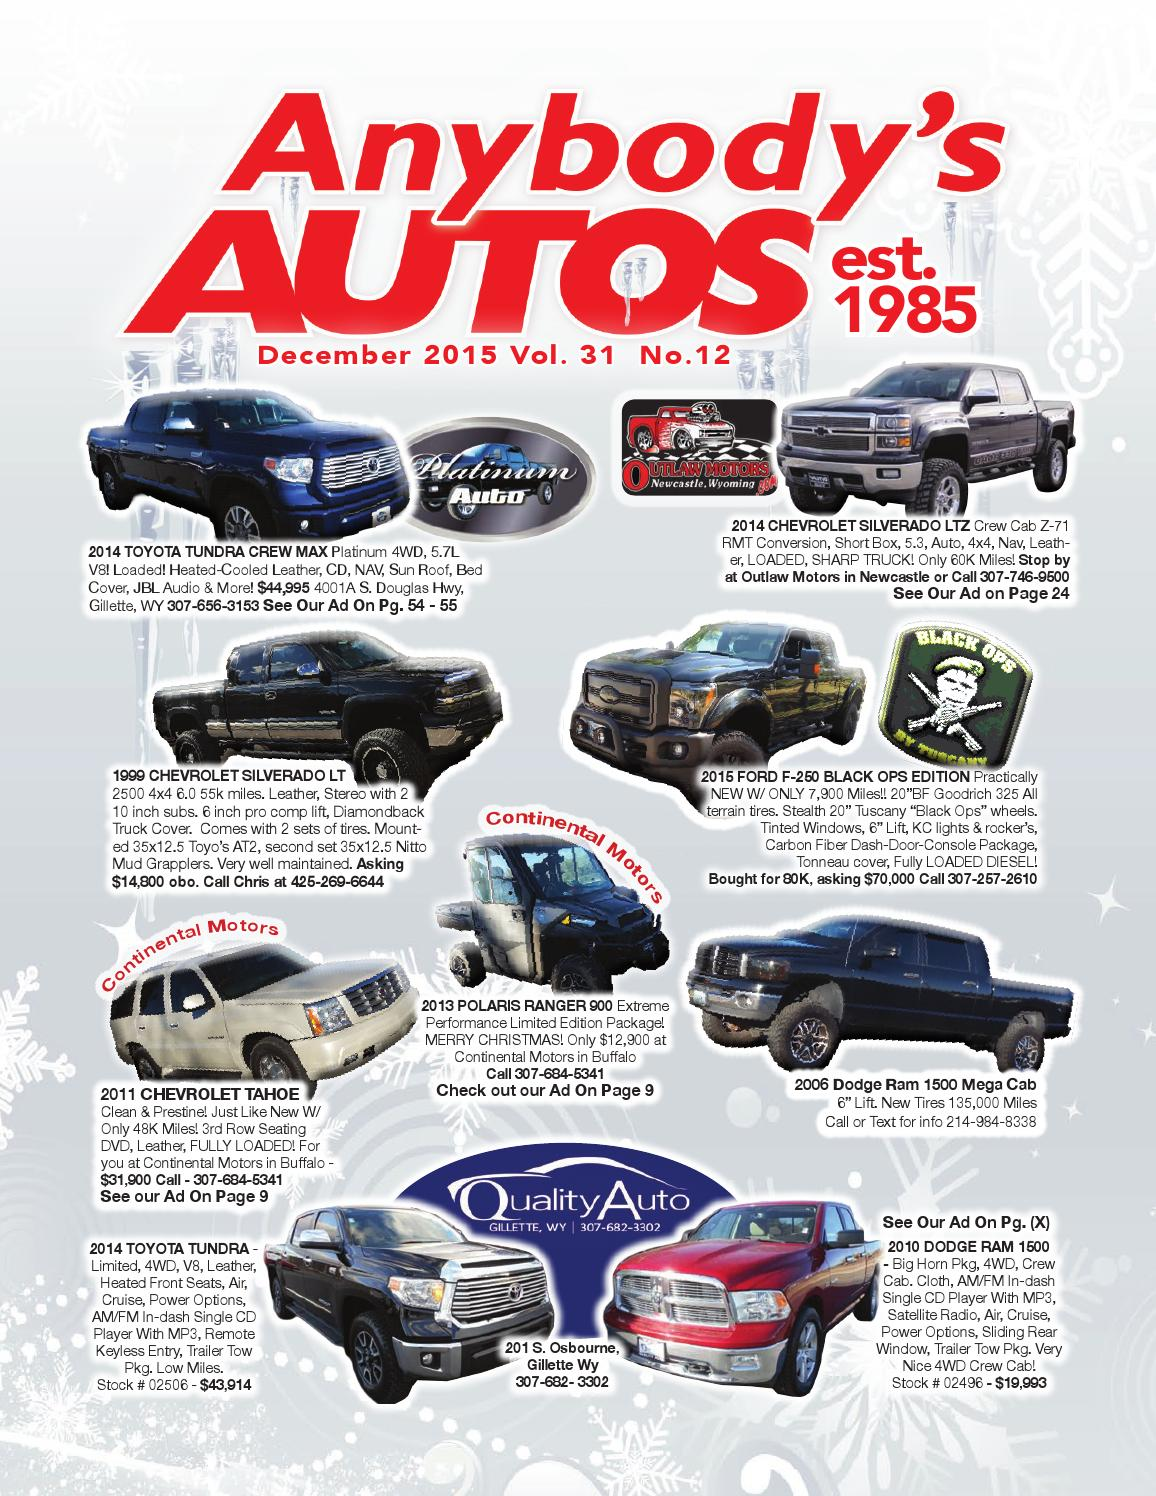 Anybody's Autos December 2015 by Anybodys Autos - issuu